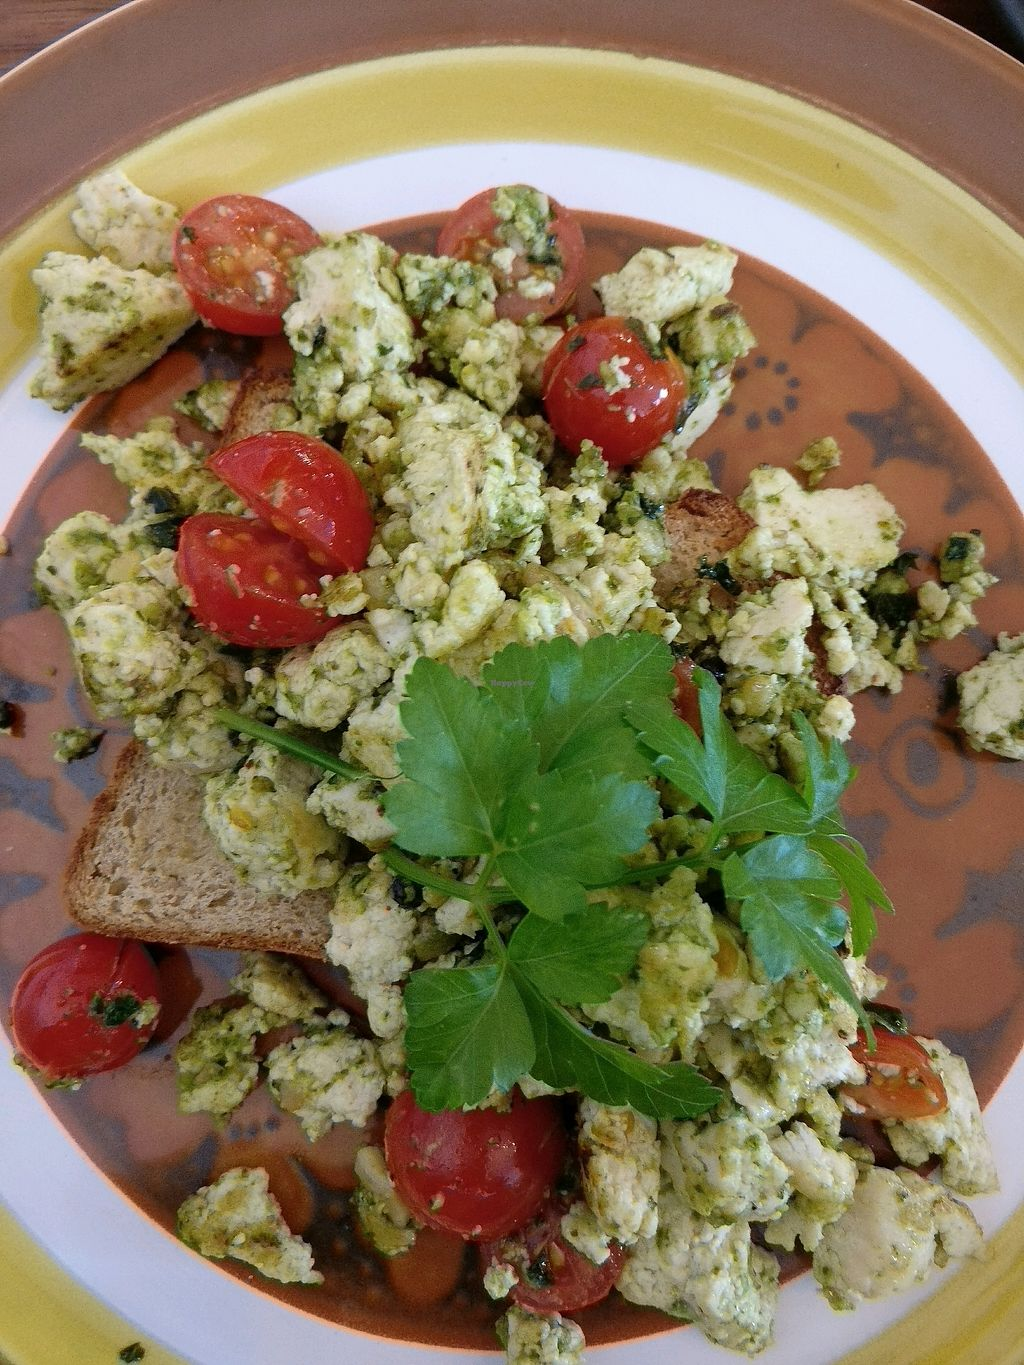 "Photo of Eka Wholefoods & Cafe  by <a href=""/members/profile/Aloo"">Aloo</a> <br/>pesto with scrambled tofu, cherry tomatoes was tasty <br/> October 7, 2017  - <a href='/contact/abuse/image/61727/312537'>Report</a>"